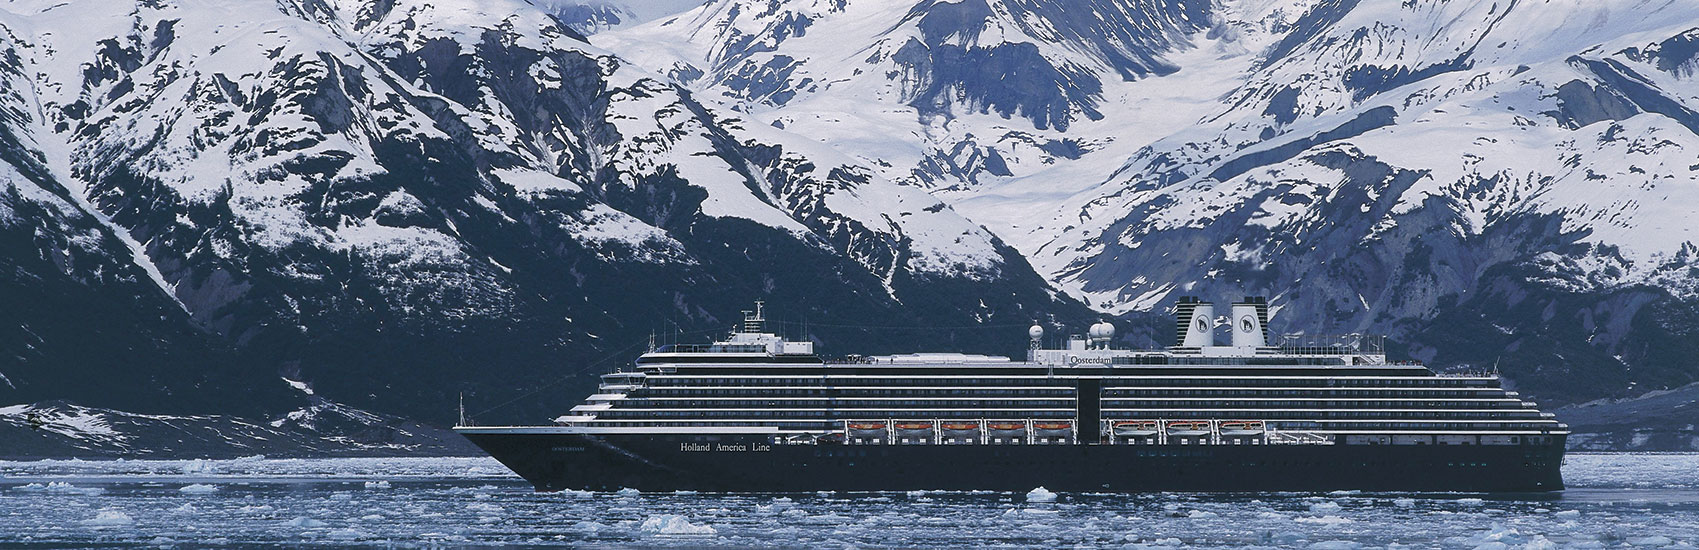 Save Now Cruise Later with Holland America 2